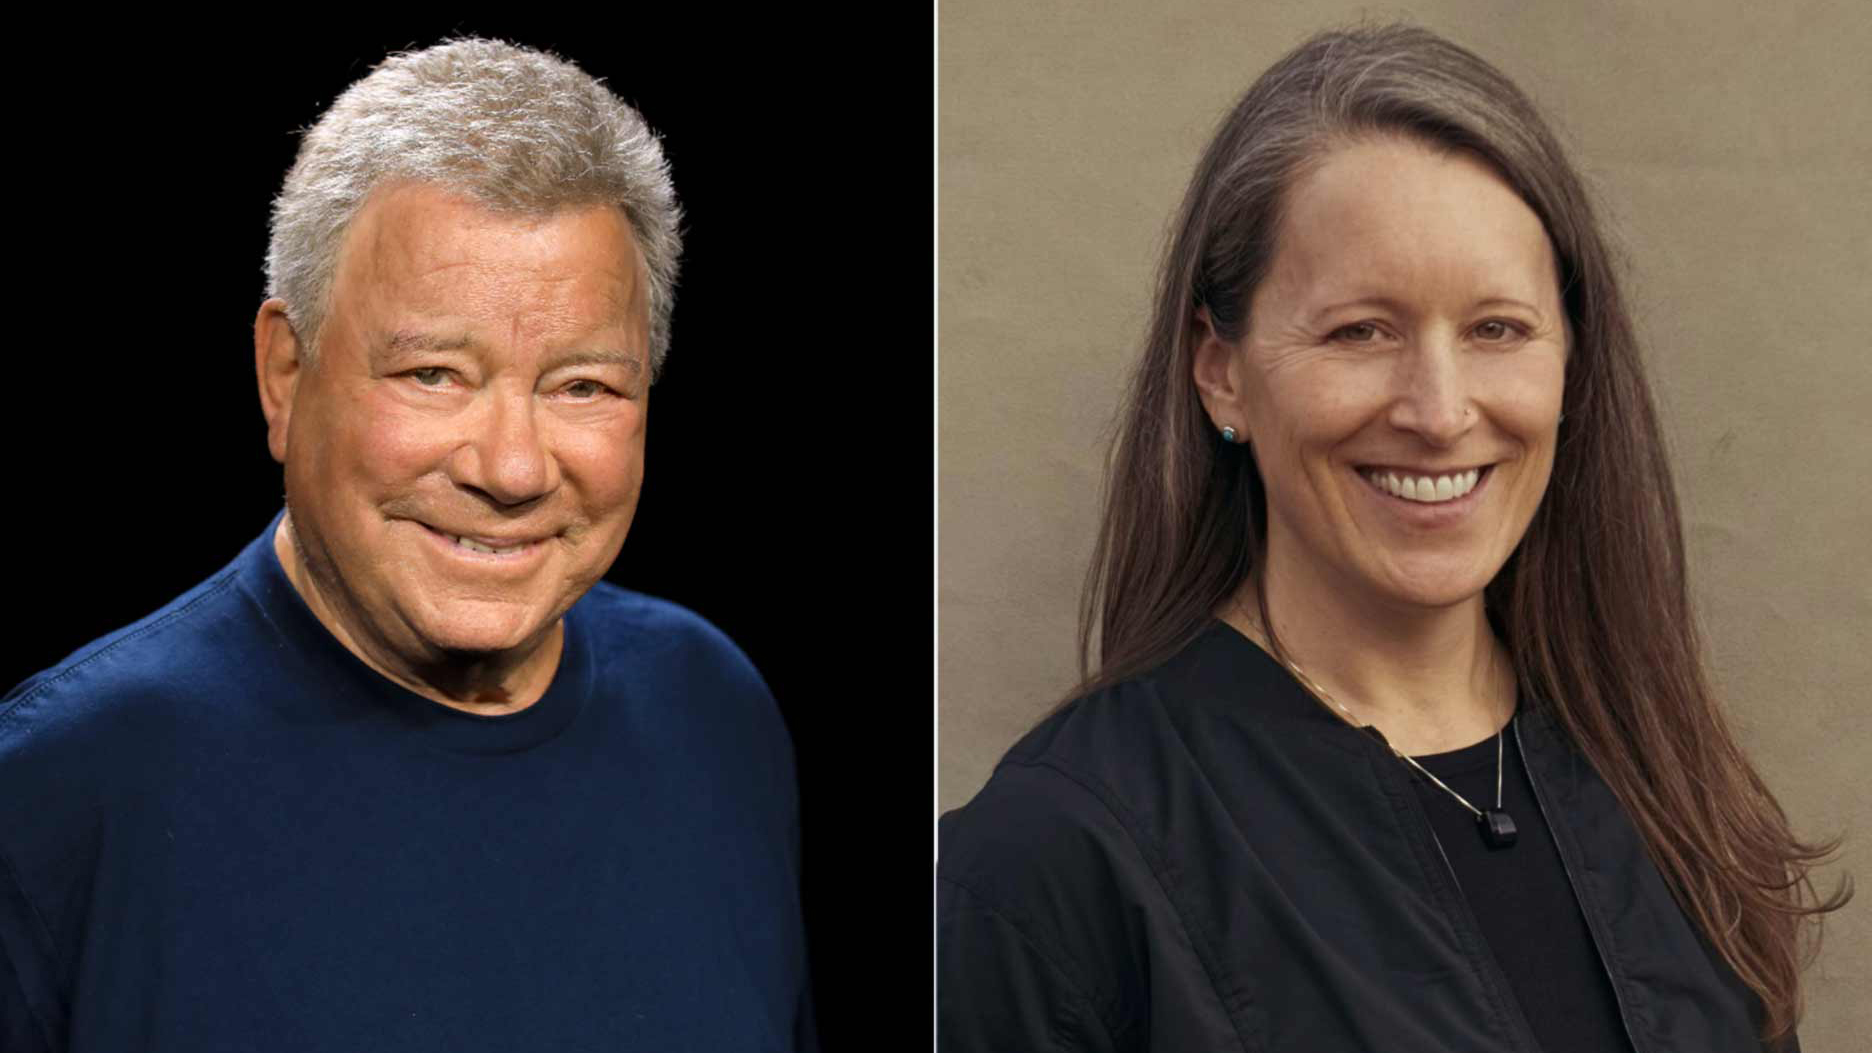 Actor William Shatner (left) and Blue Origin Vice President of Mission & Flight Operations Audrey Powers (right) will fly on Blue Origin's New Shepard NS-18 mission, on Oct. 12, 2021.